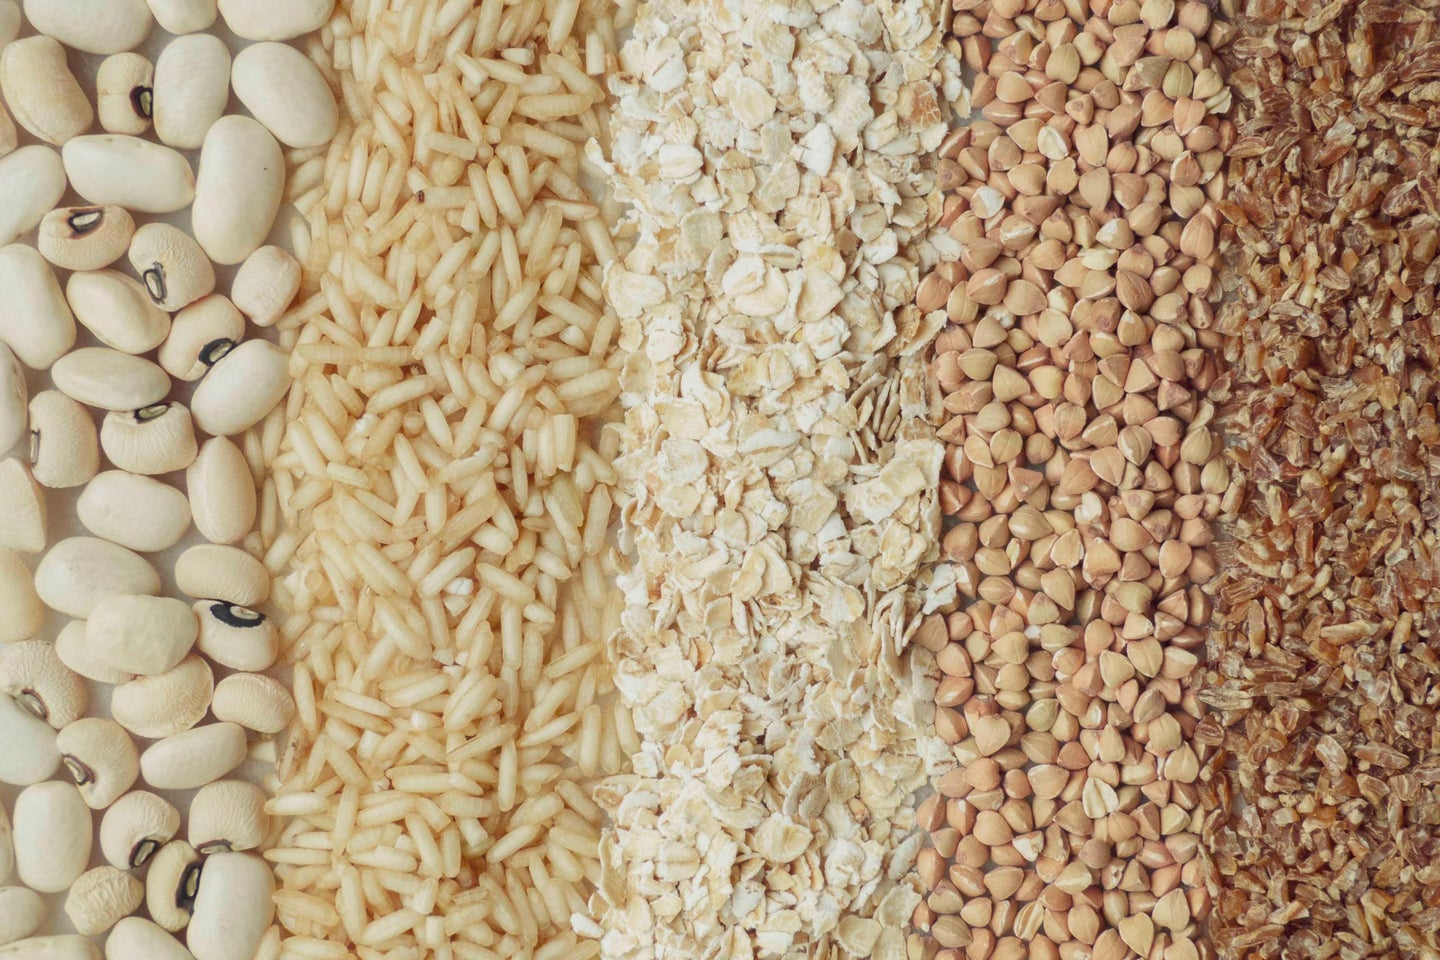 legumes and whole grains